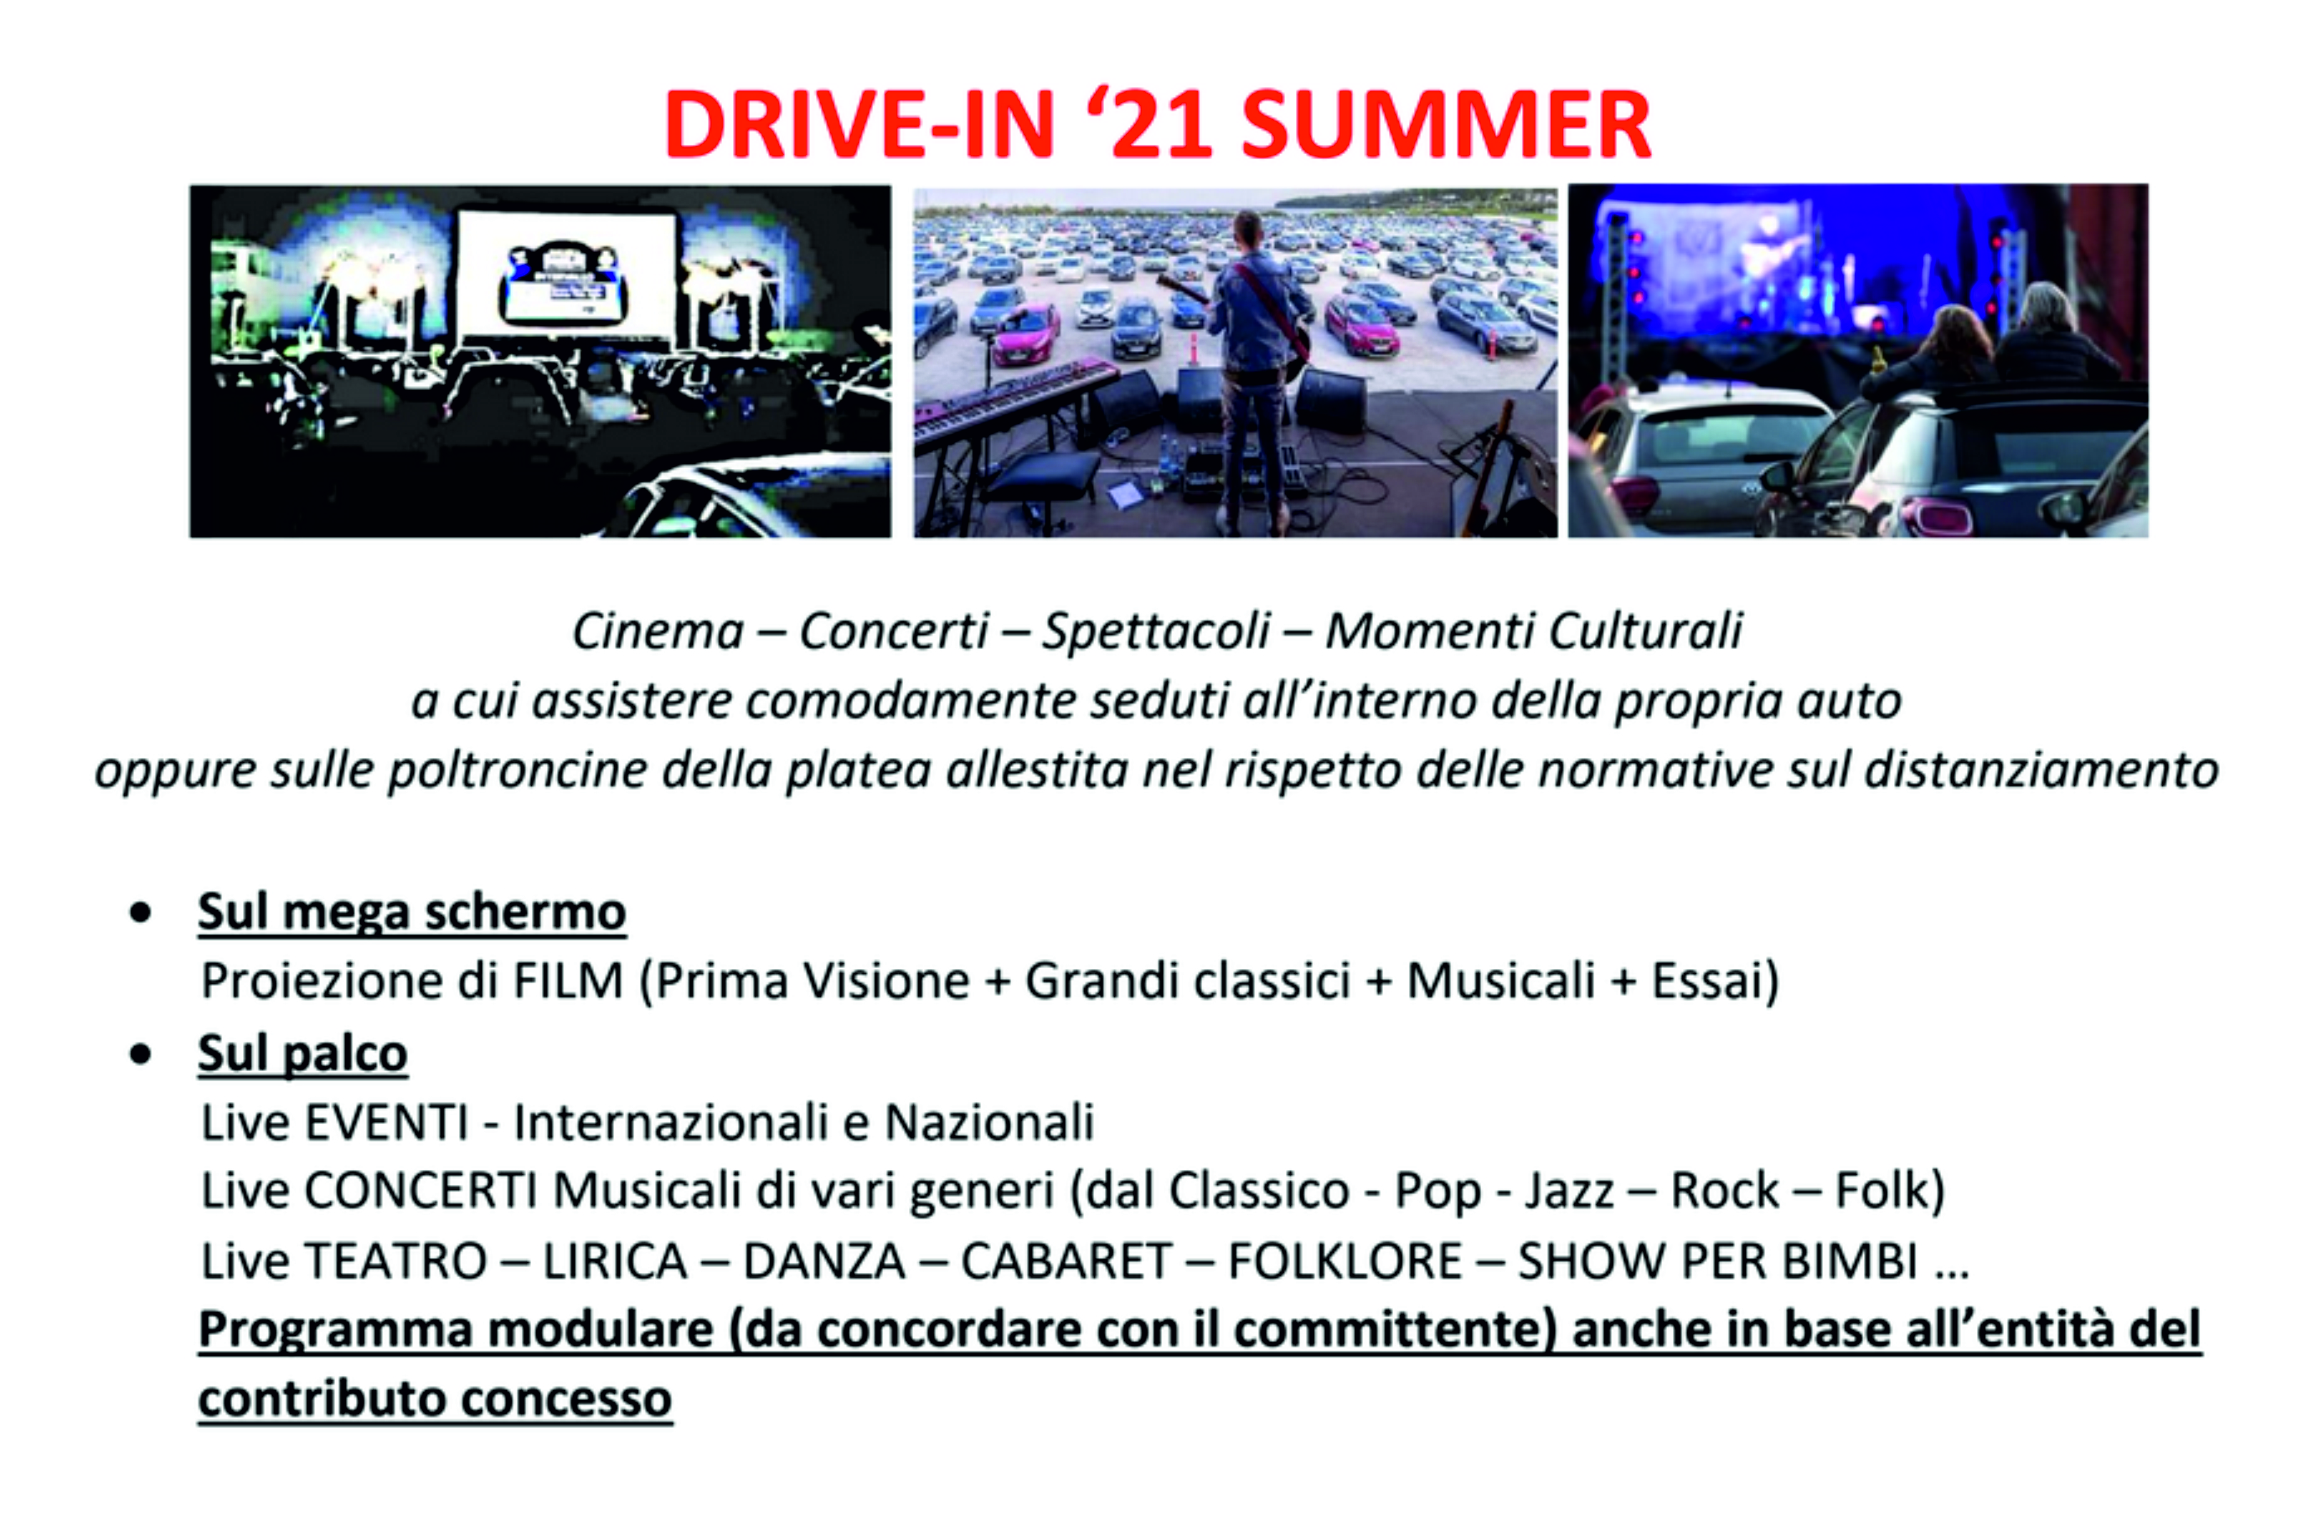 DRIVE-IN-SUMMER-21